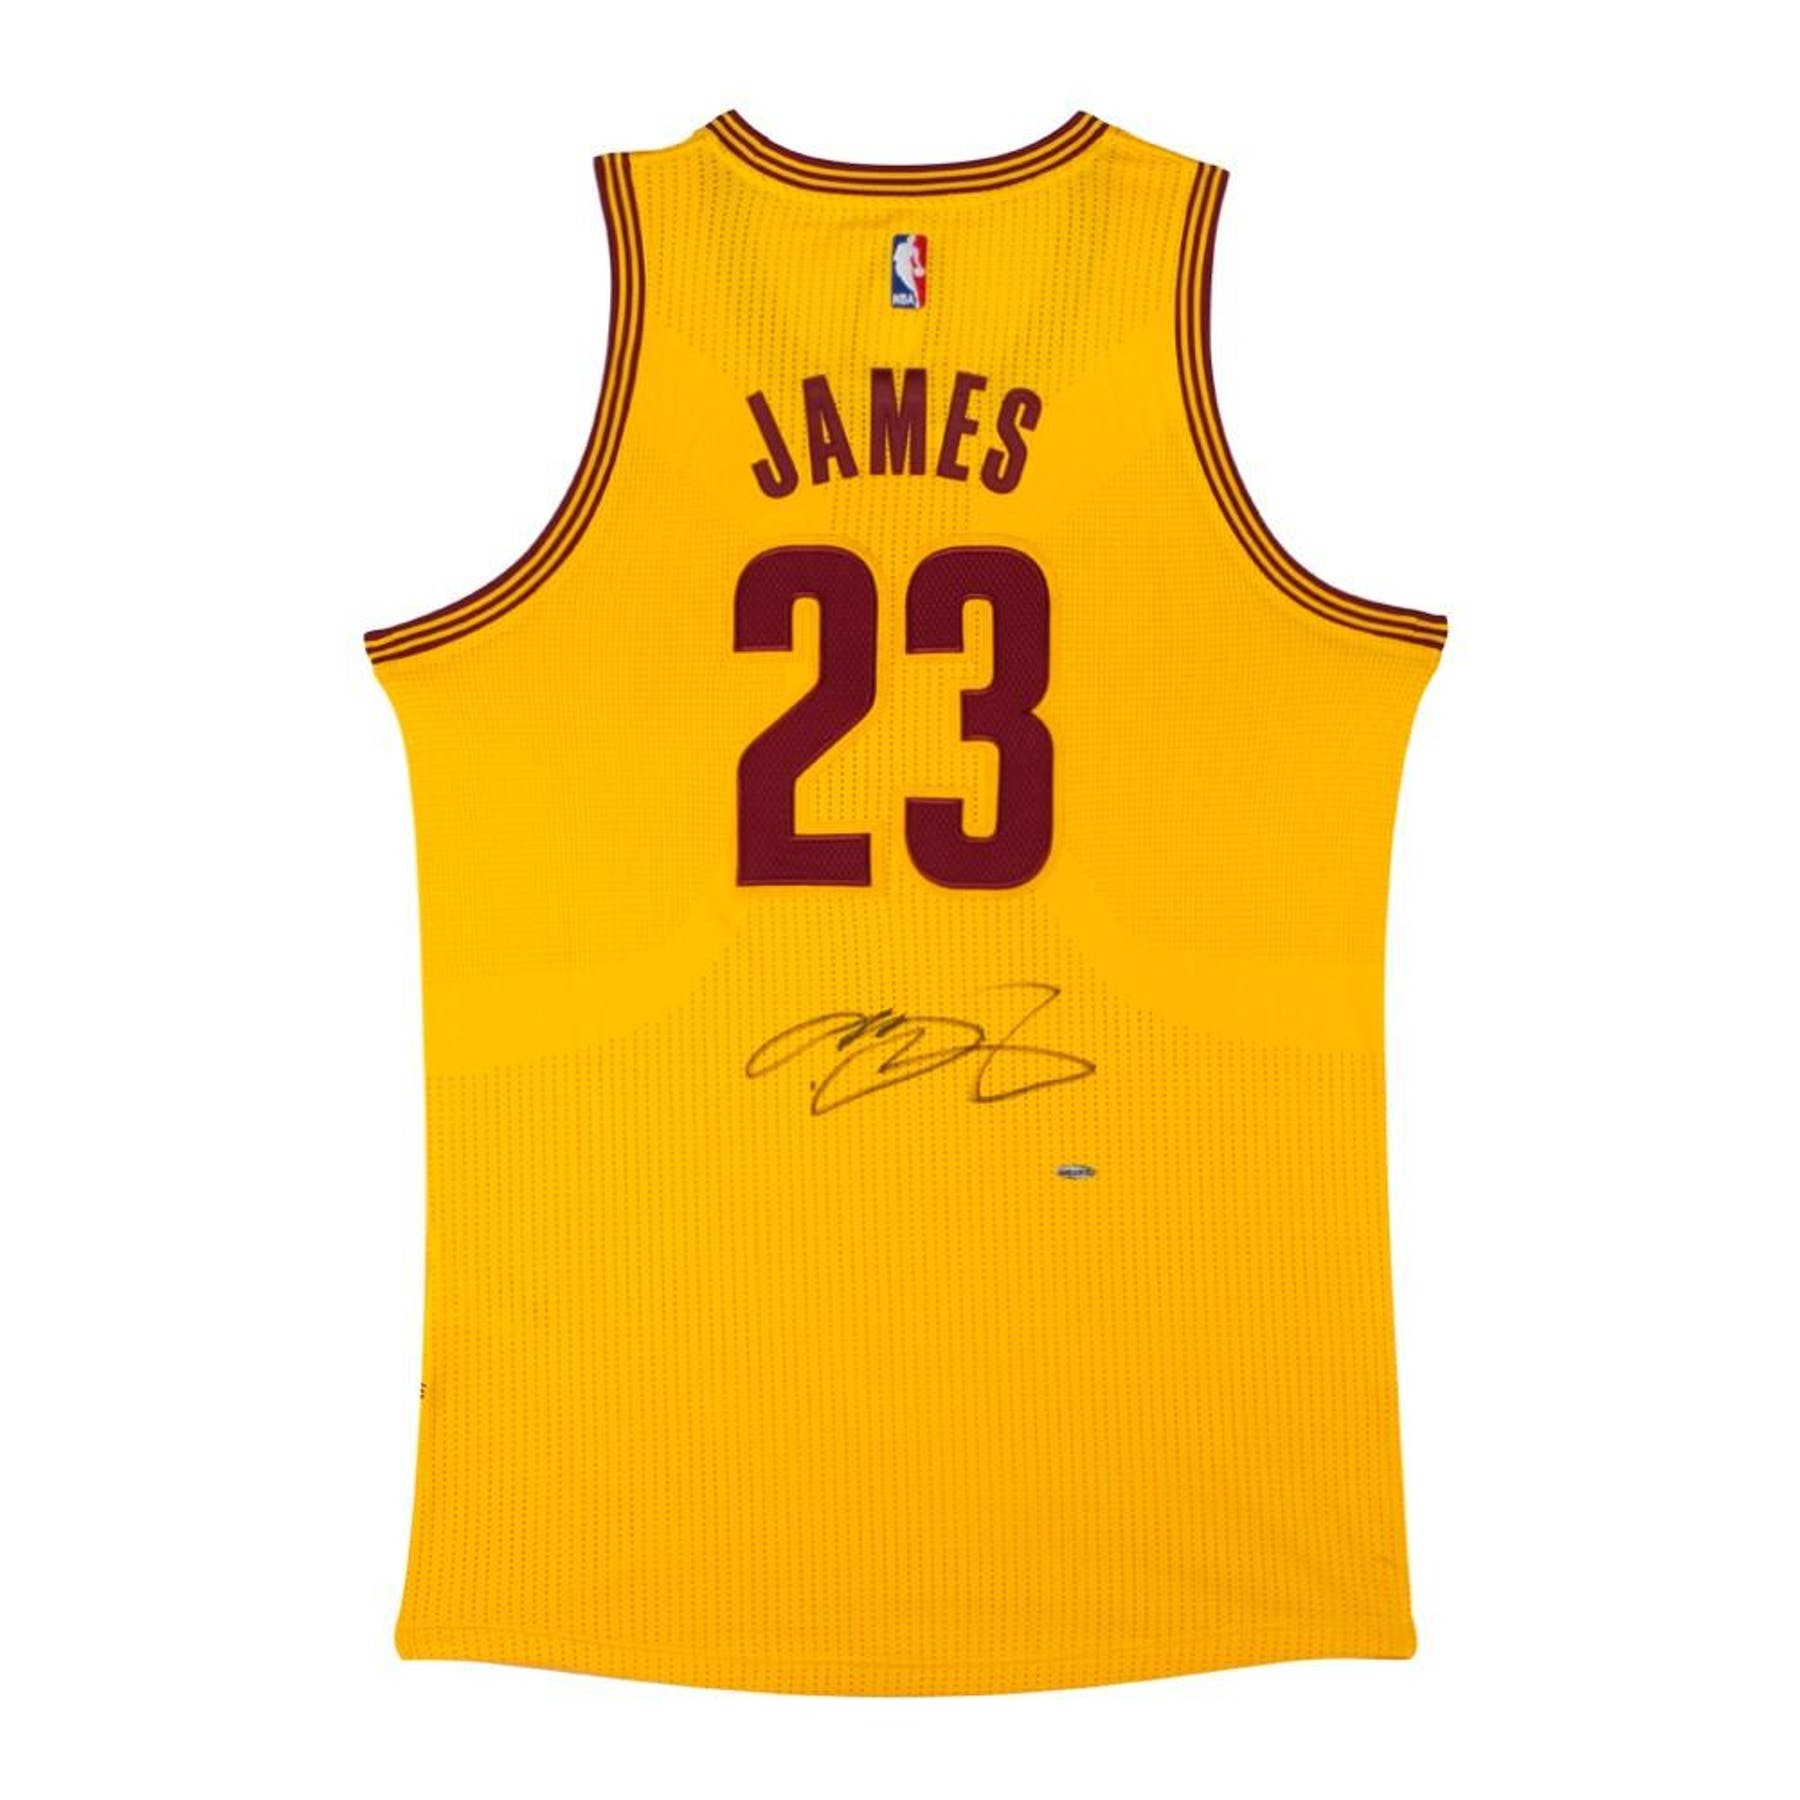 fb13a8f0788d LeBron James Autographed Cleveland Cavaliers Yellow Basketball Jersey UDA